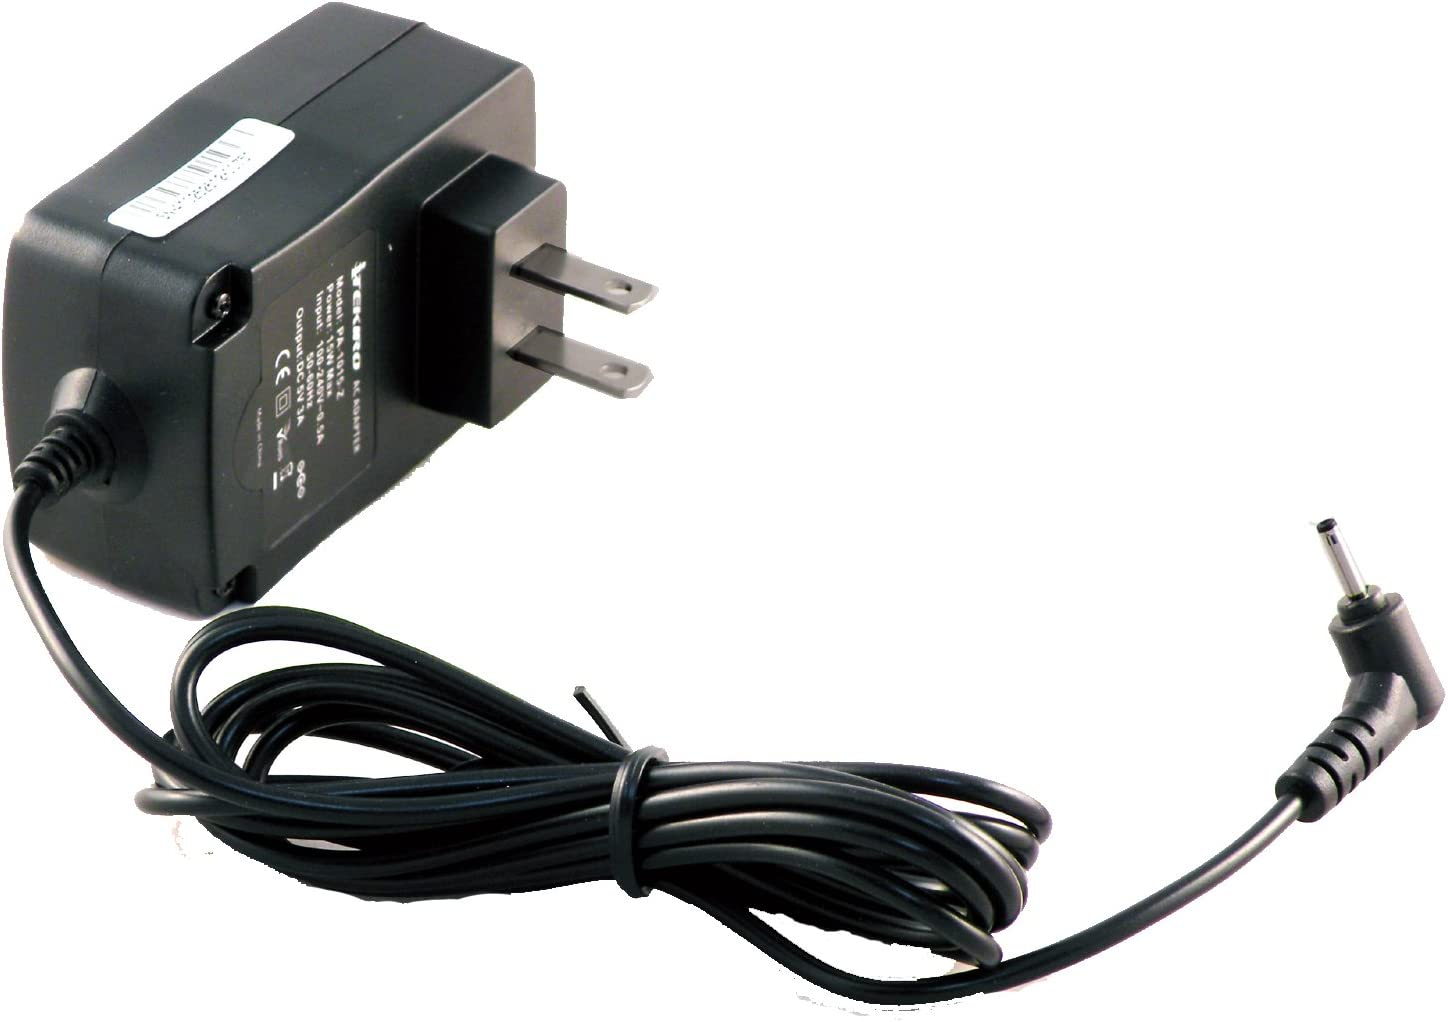 iTEKIRO 6.5 Ft Cord 5V AC Wall Charger for Acer One 10 S1002, S1002-12V2, S1002-145A, S1002-14PC, S1002-15XR; Acer NT.G53AA.003, NT.G53SI.001, NT.MUPSI.001, NT.MUPSI.003